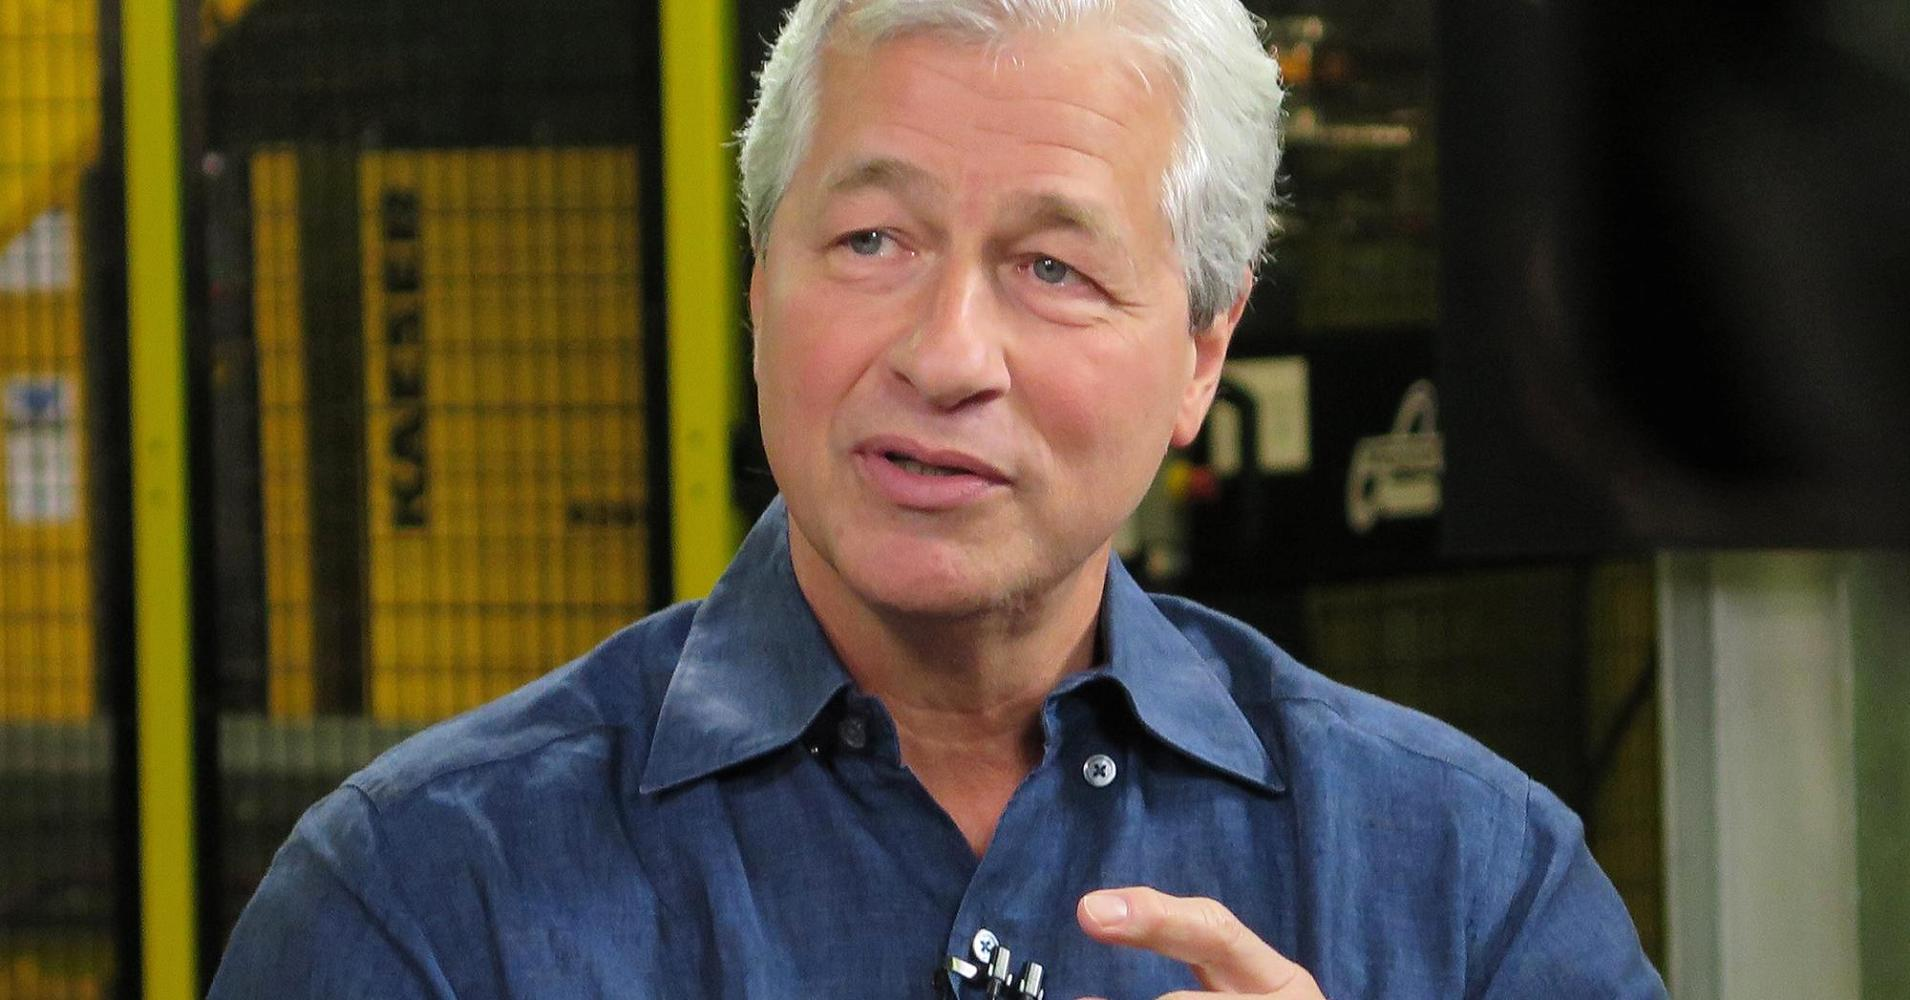 Jamie Dimon, CEO of JP Morgan Chase says he regrets calling bitcoin a fraud